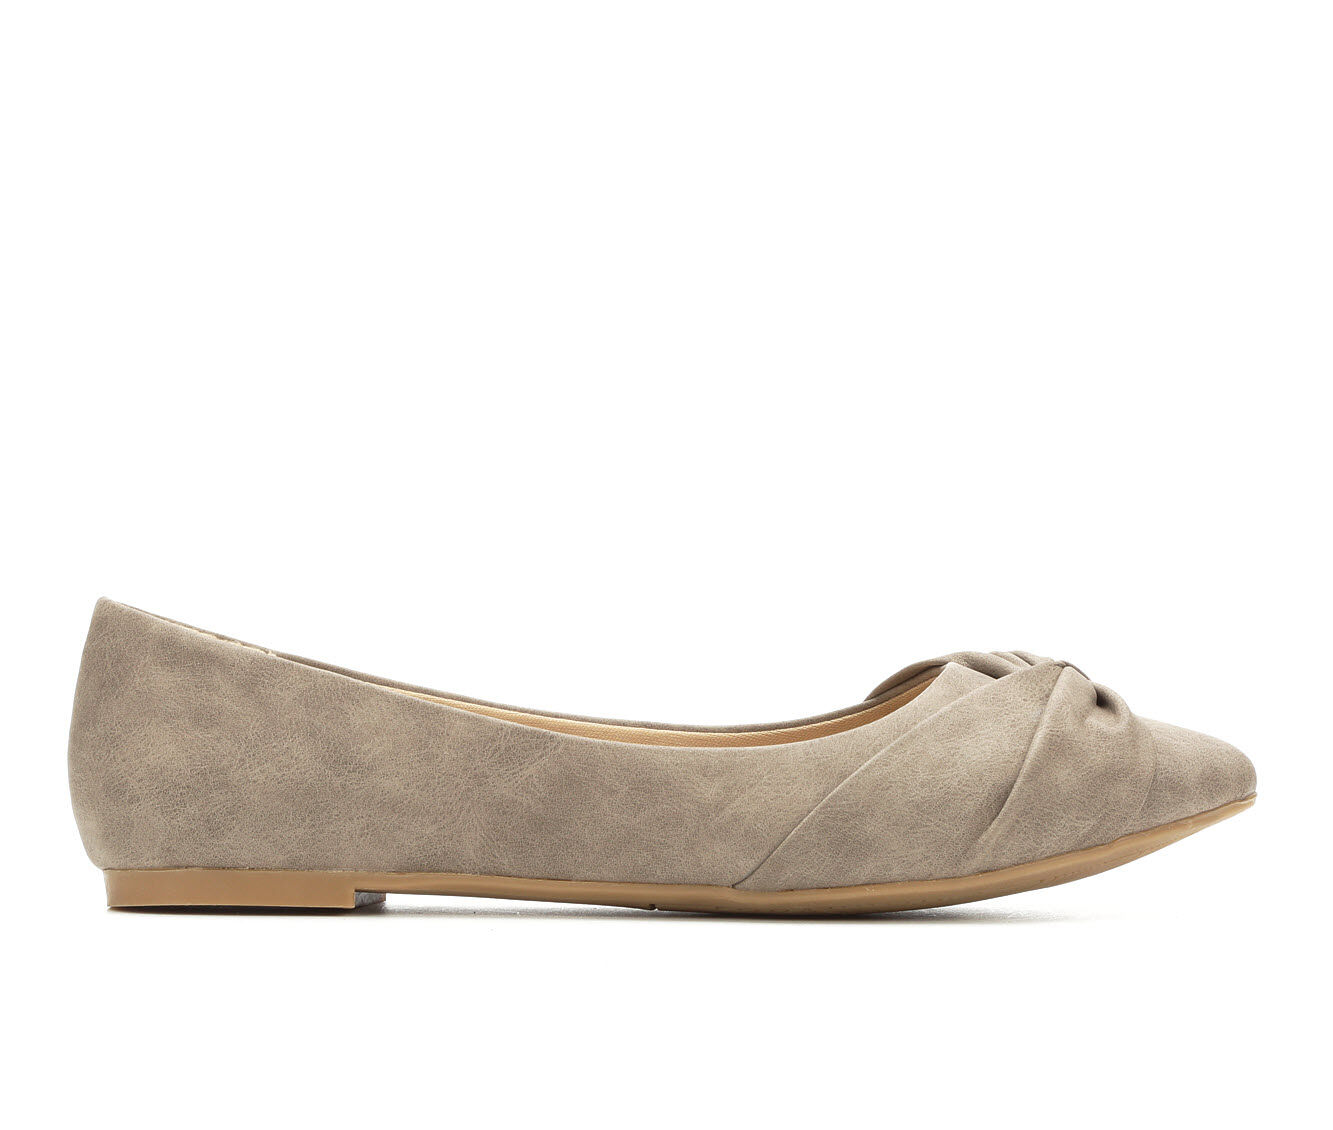 Women's Jellypop Jacquee Flats Taupe